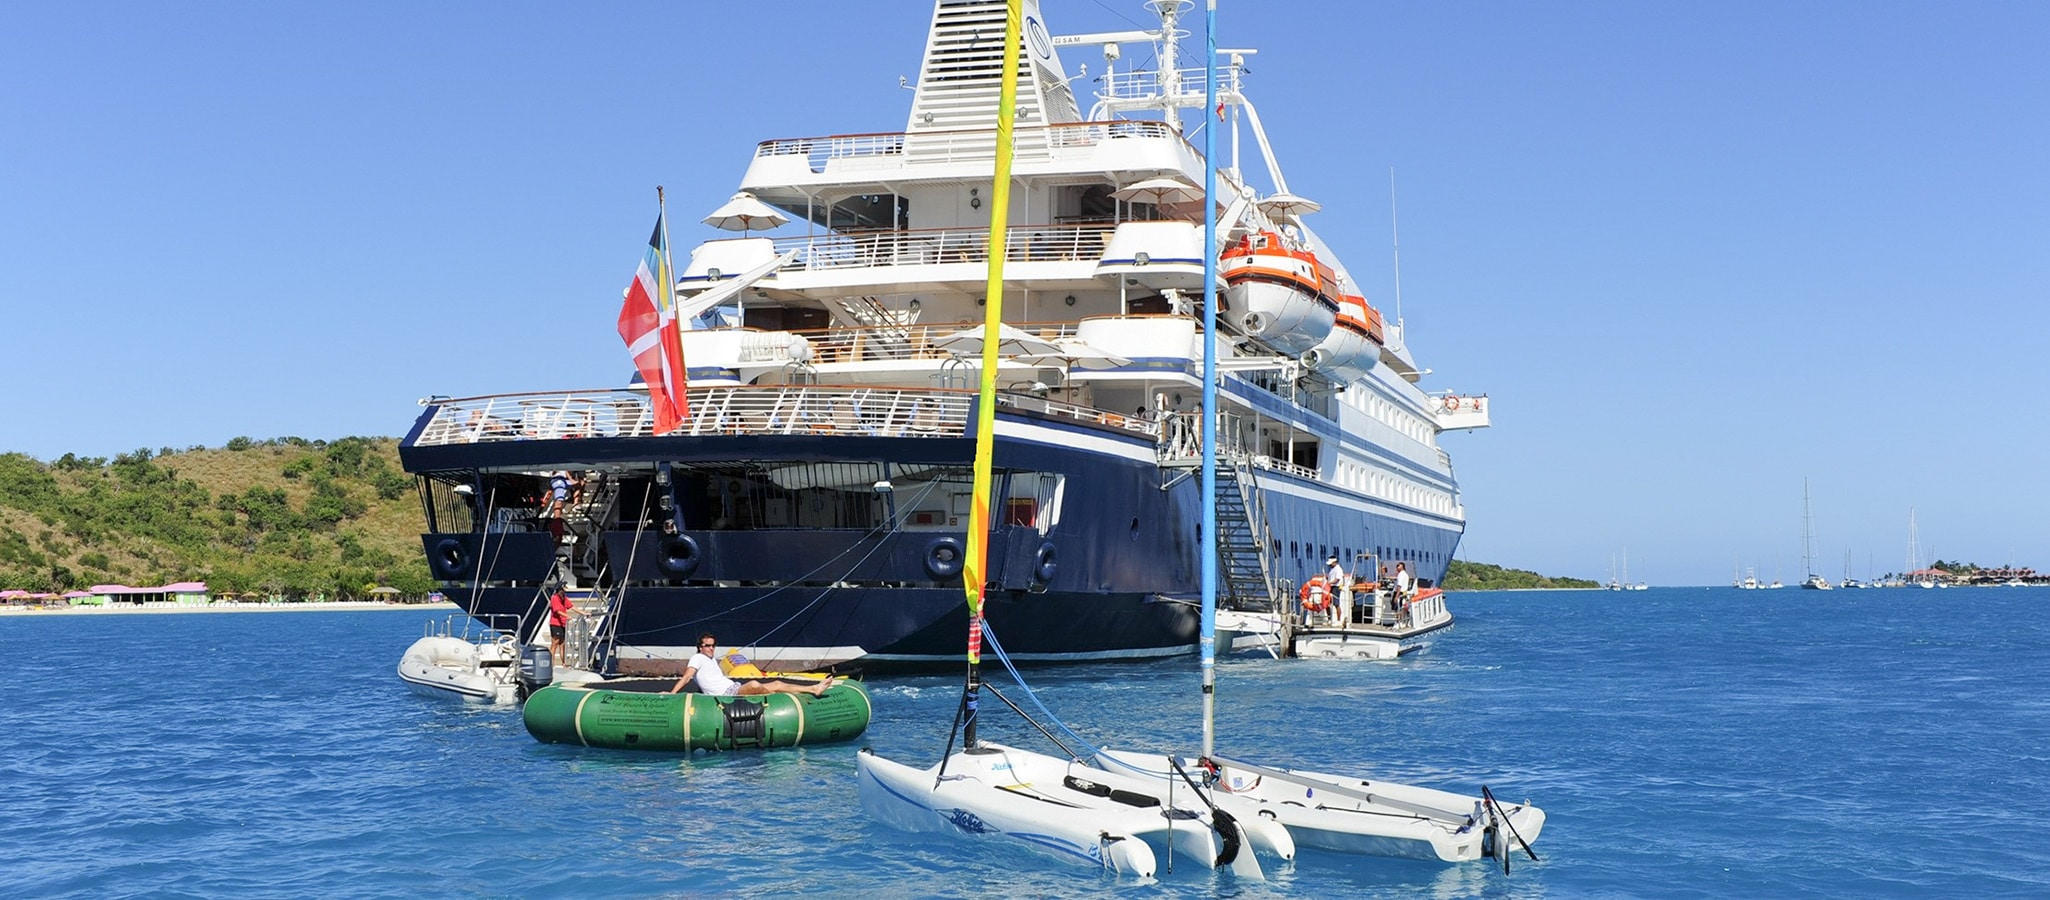 A must for any maritime event: swimming fun and water sports directly from the marina platform.